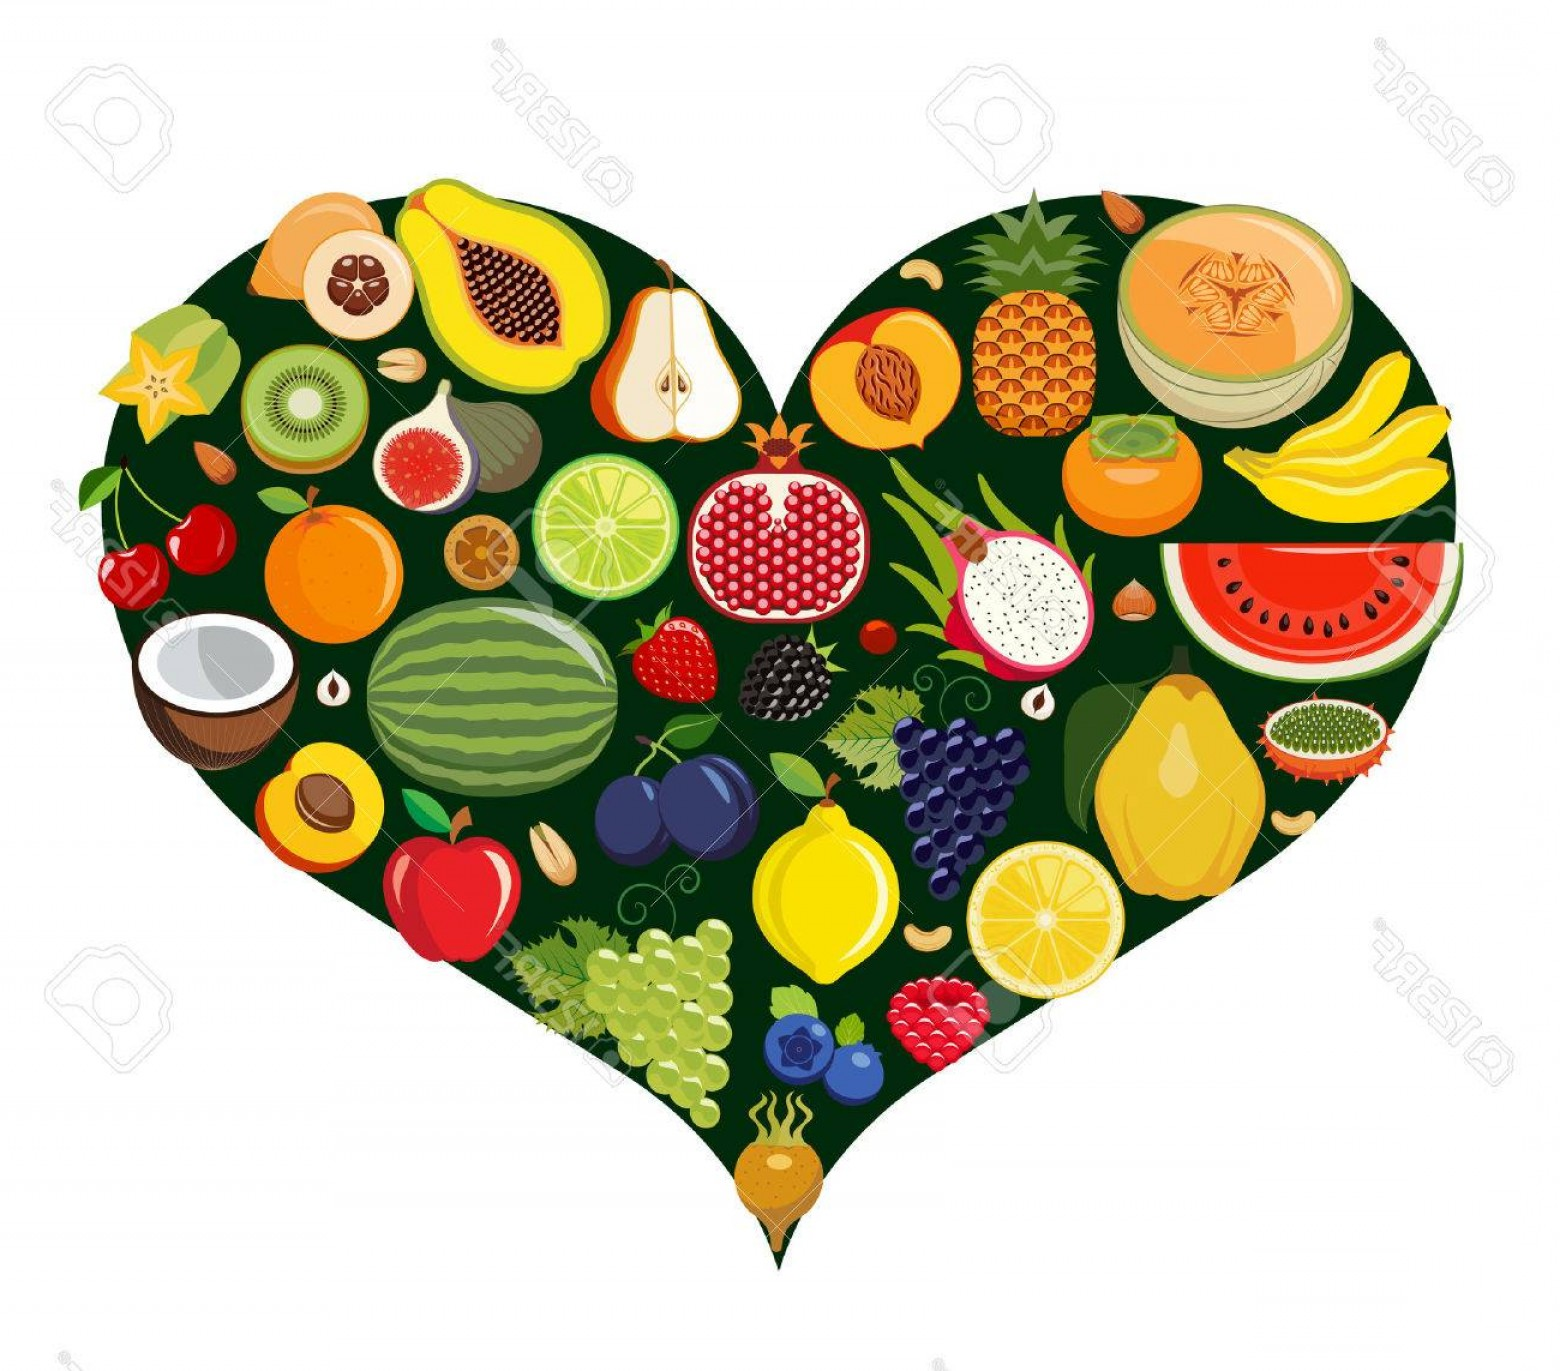 Vegan Heart Vectors: Photostock Vector Set Of Fruit Icons Forming Heart Shape Vegetarian Food Icons Healthy Low Fat Food Preventing Cardiac